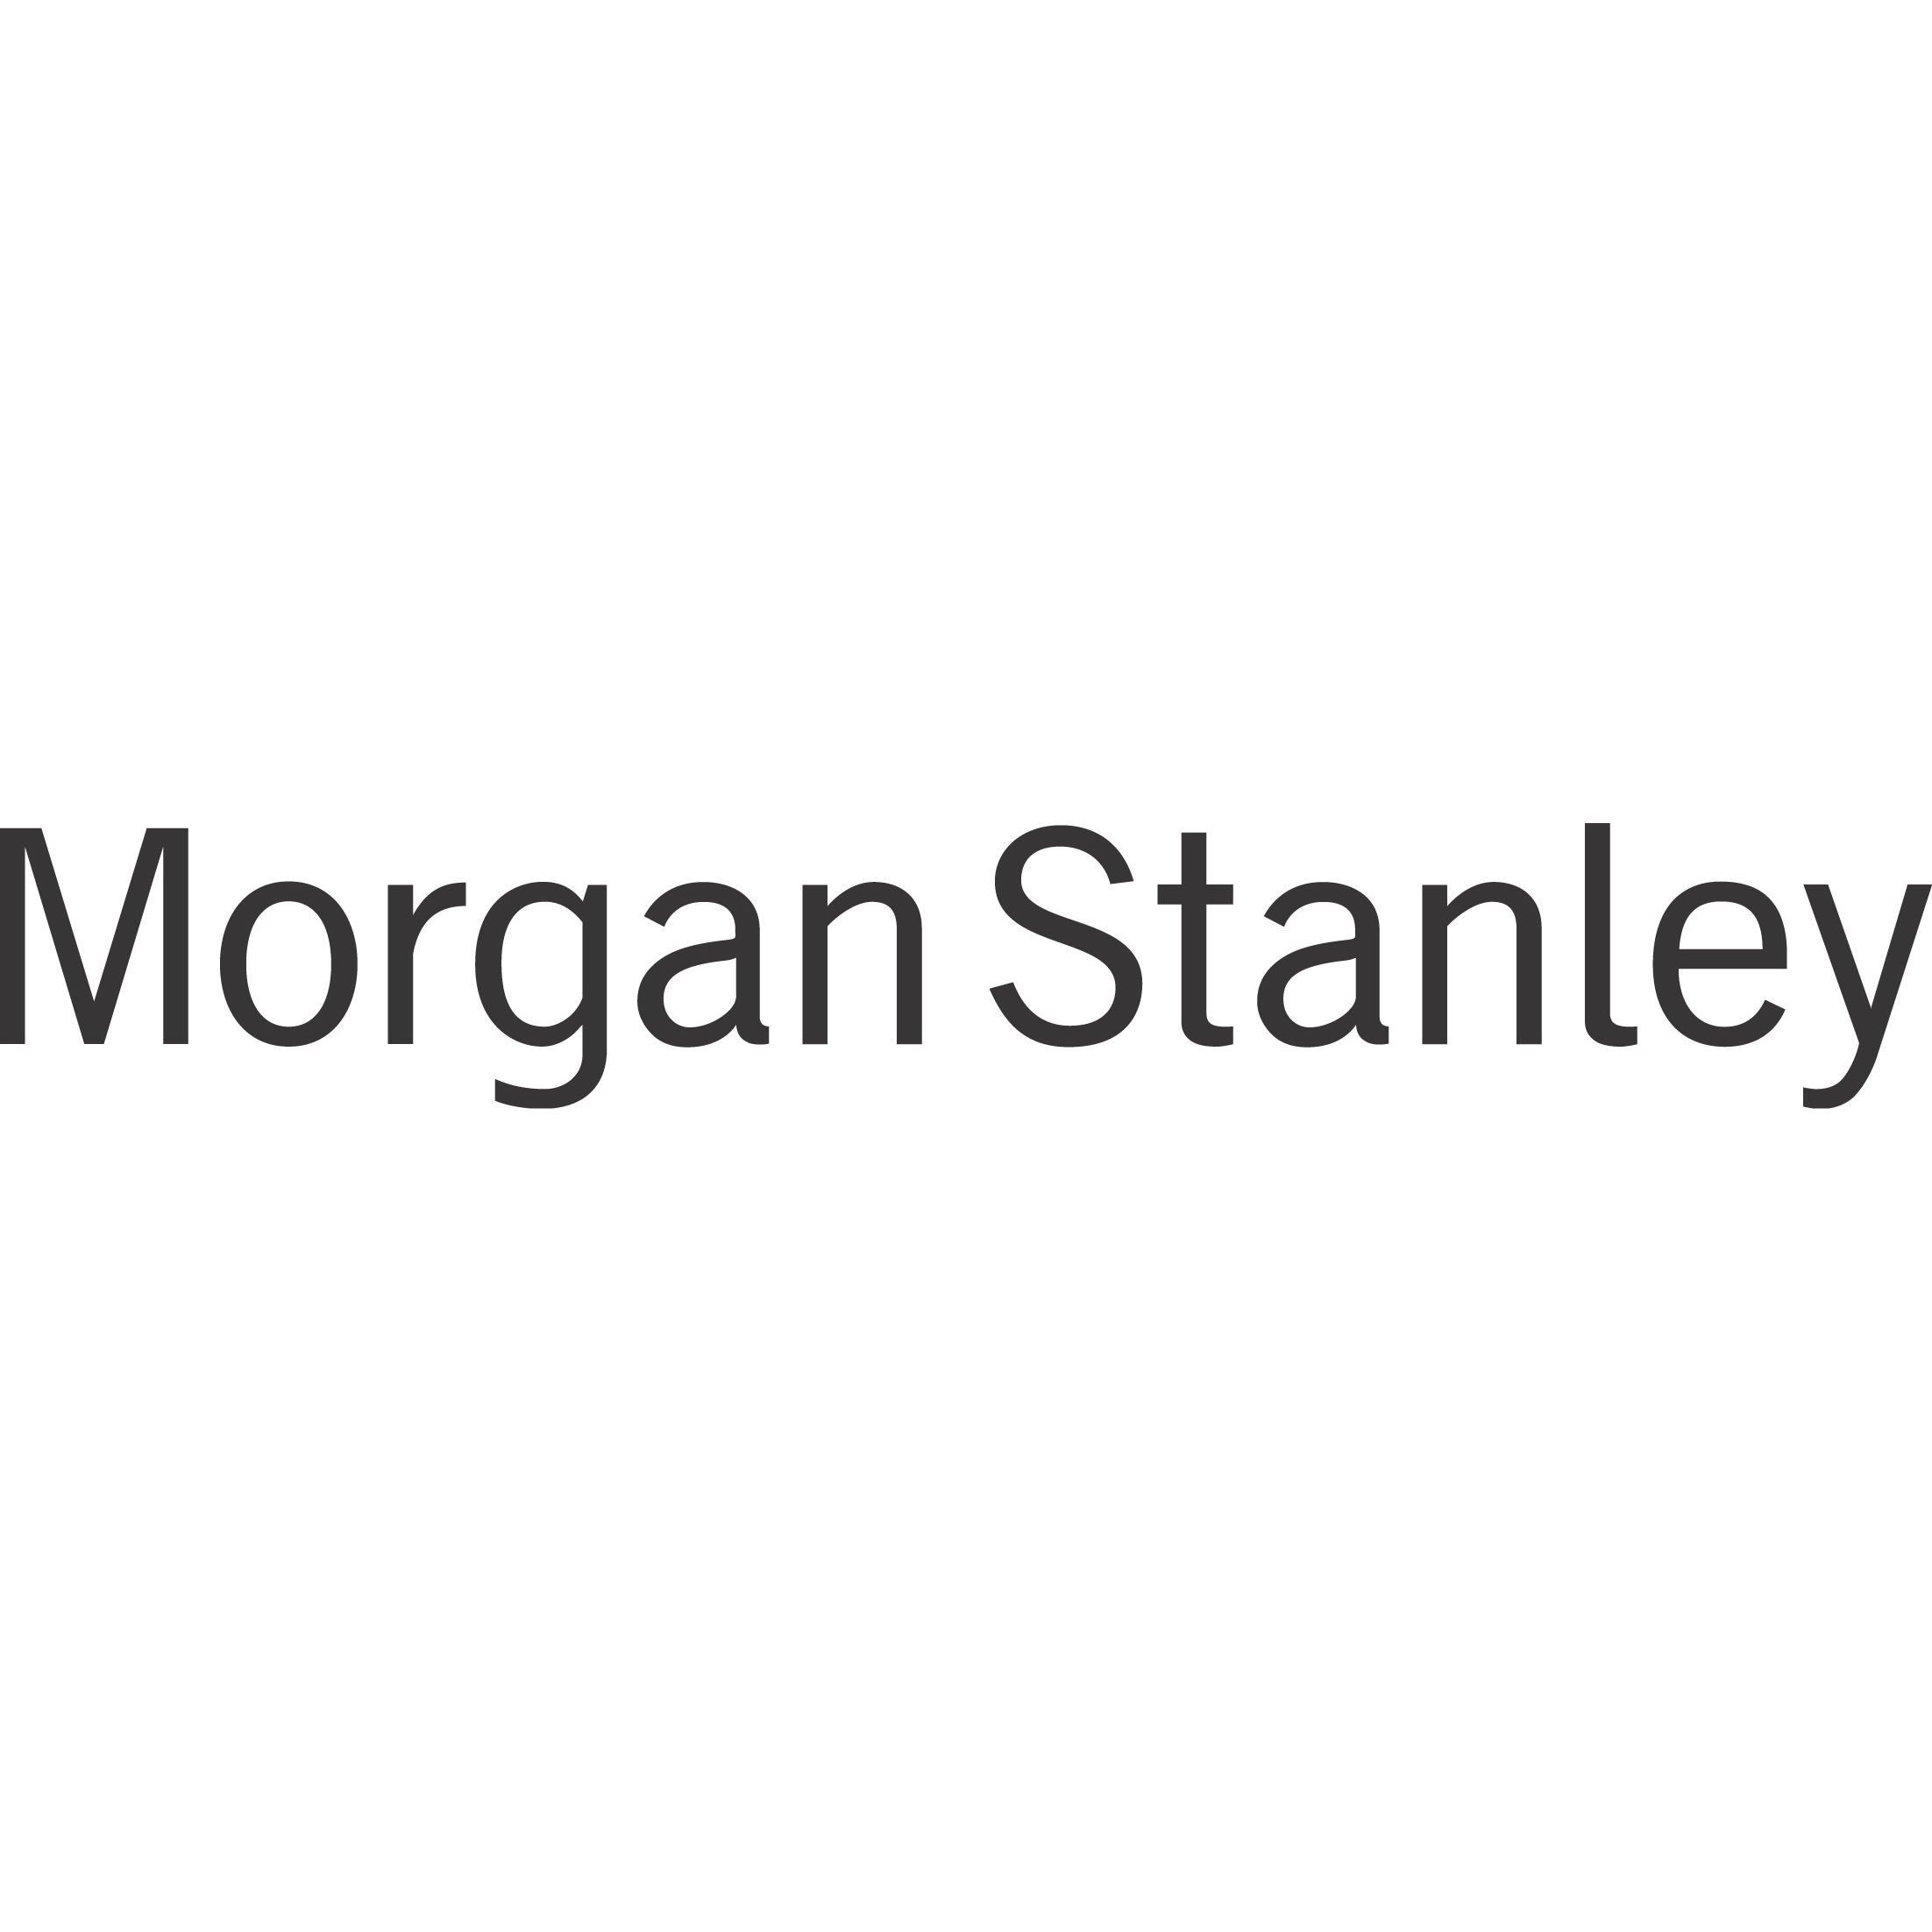 Cathy Angstman - Morgan Stanley